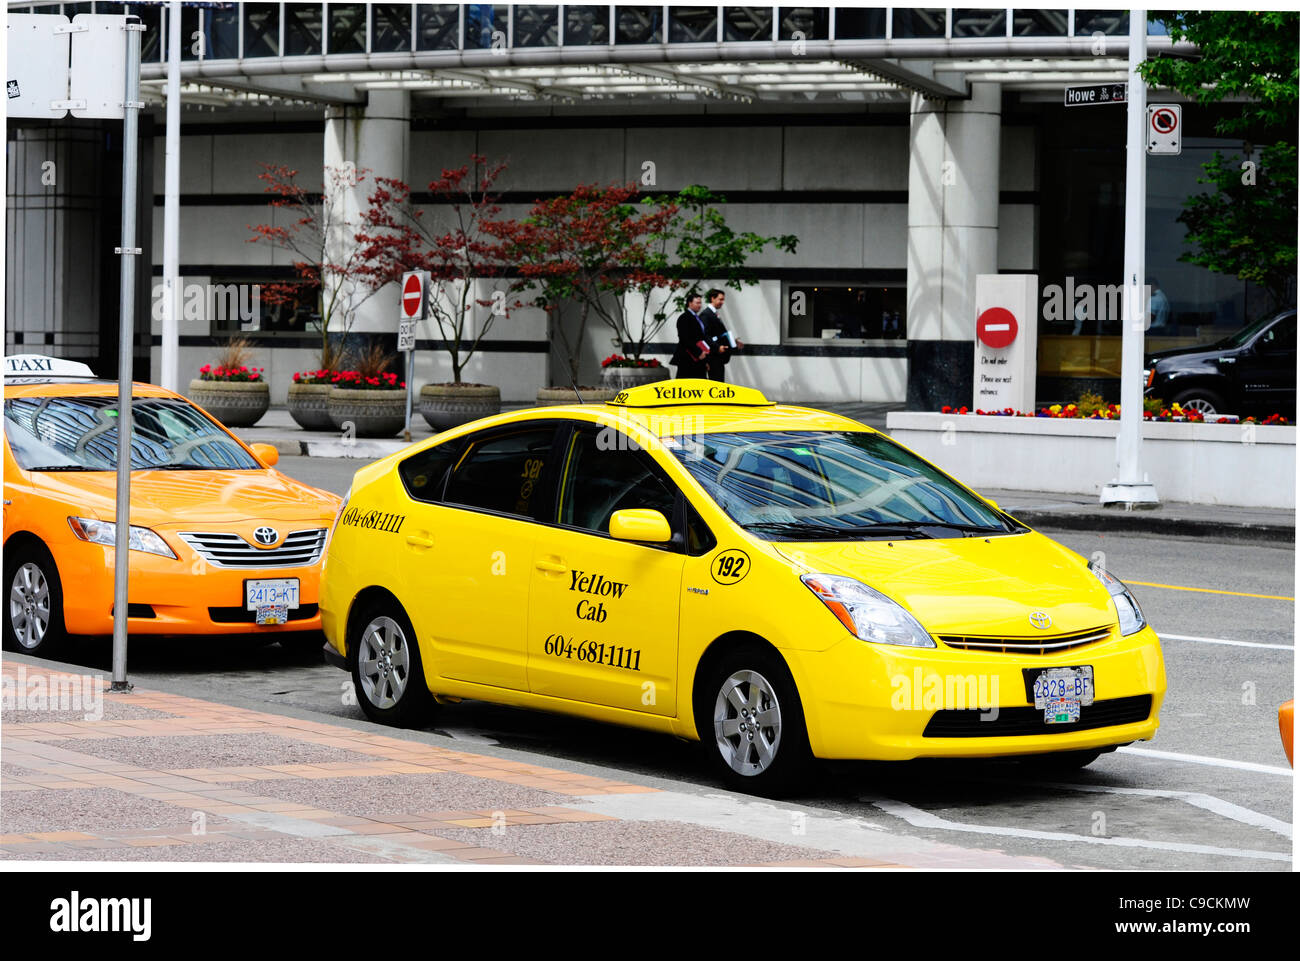 Yellow cab taxi in Vancouver. - Stock Image